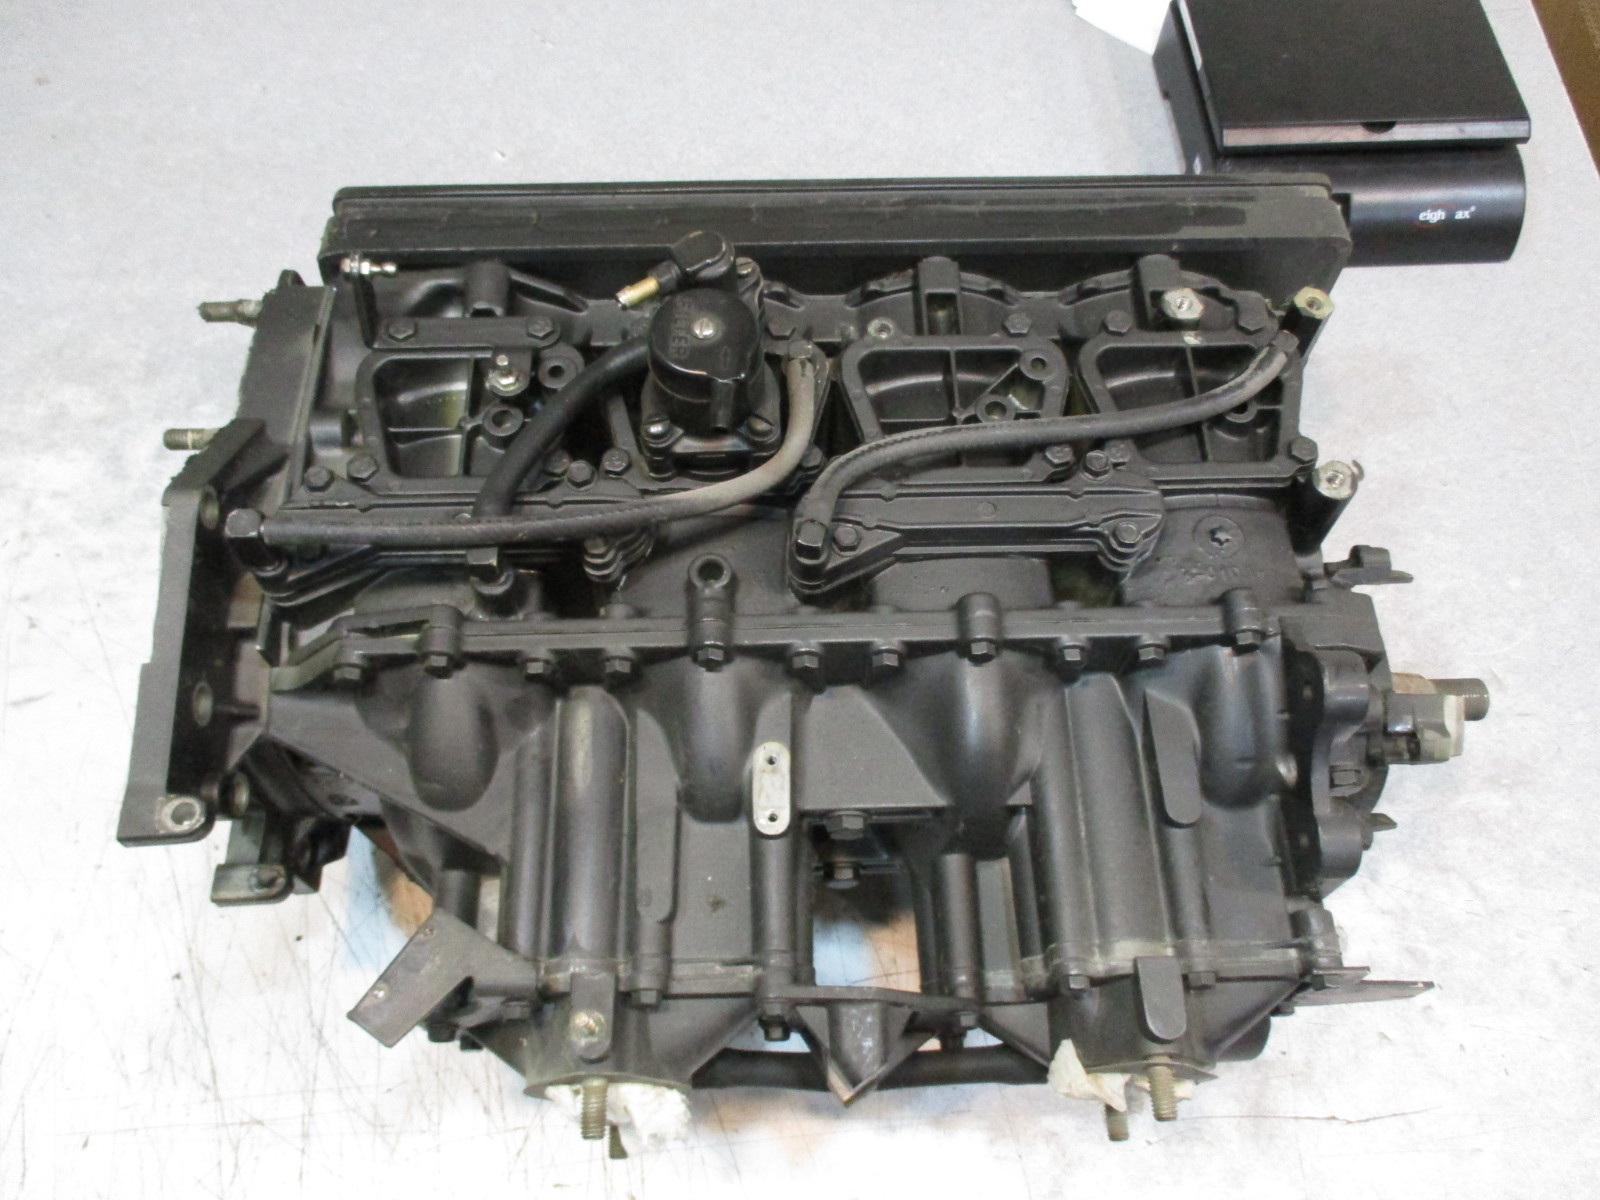 Force 120 125 hp outboard powerhead 4 cylinder block crank for 125 hp force outboard motor for sale